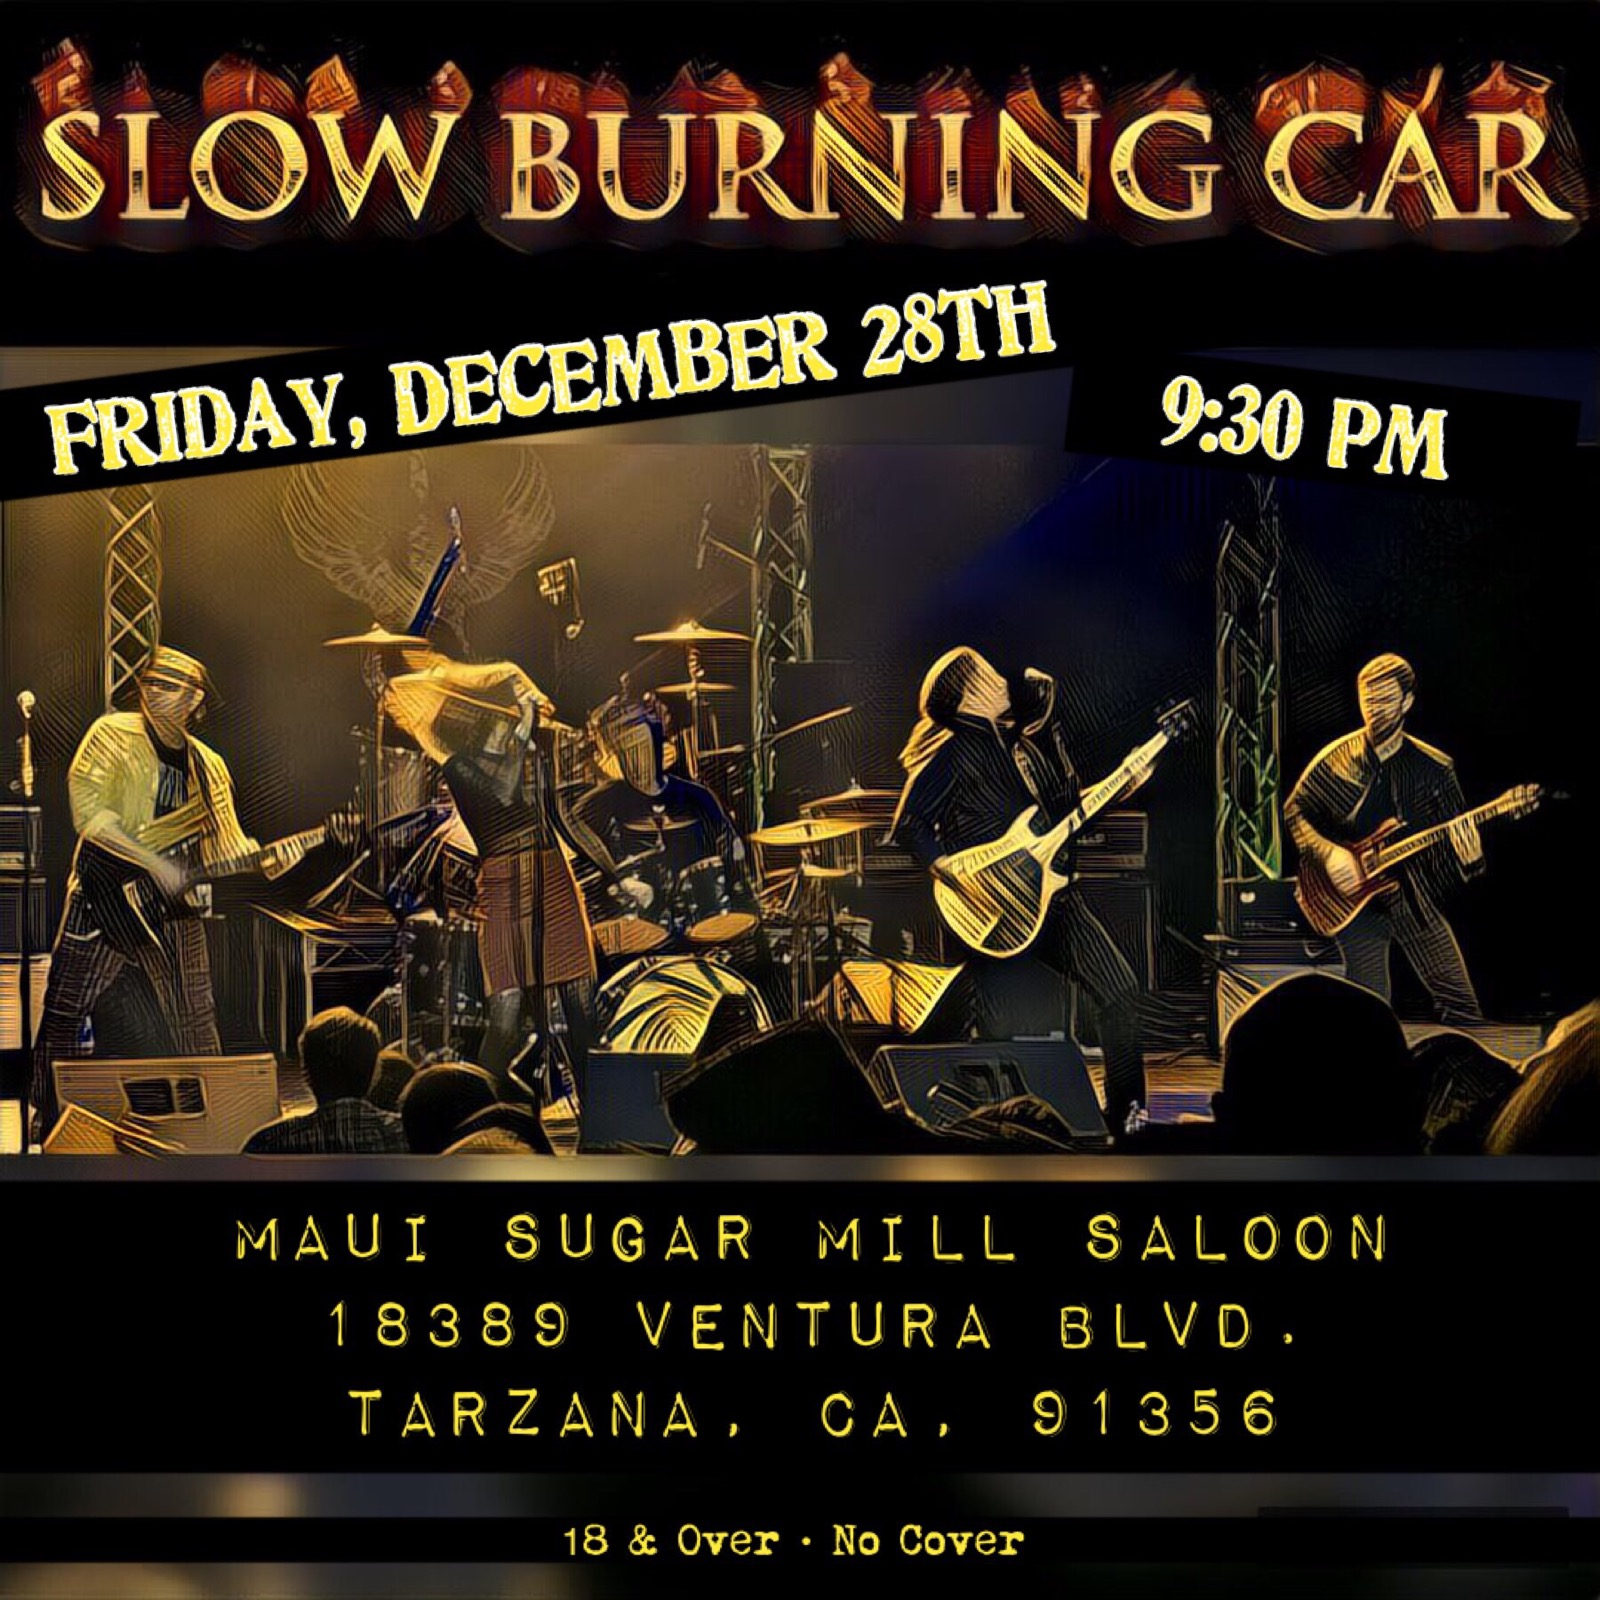 Promo Flier (December 2018)  Maui Sugarmill Saloon in Tarzana, CA   created by Michelle Idell